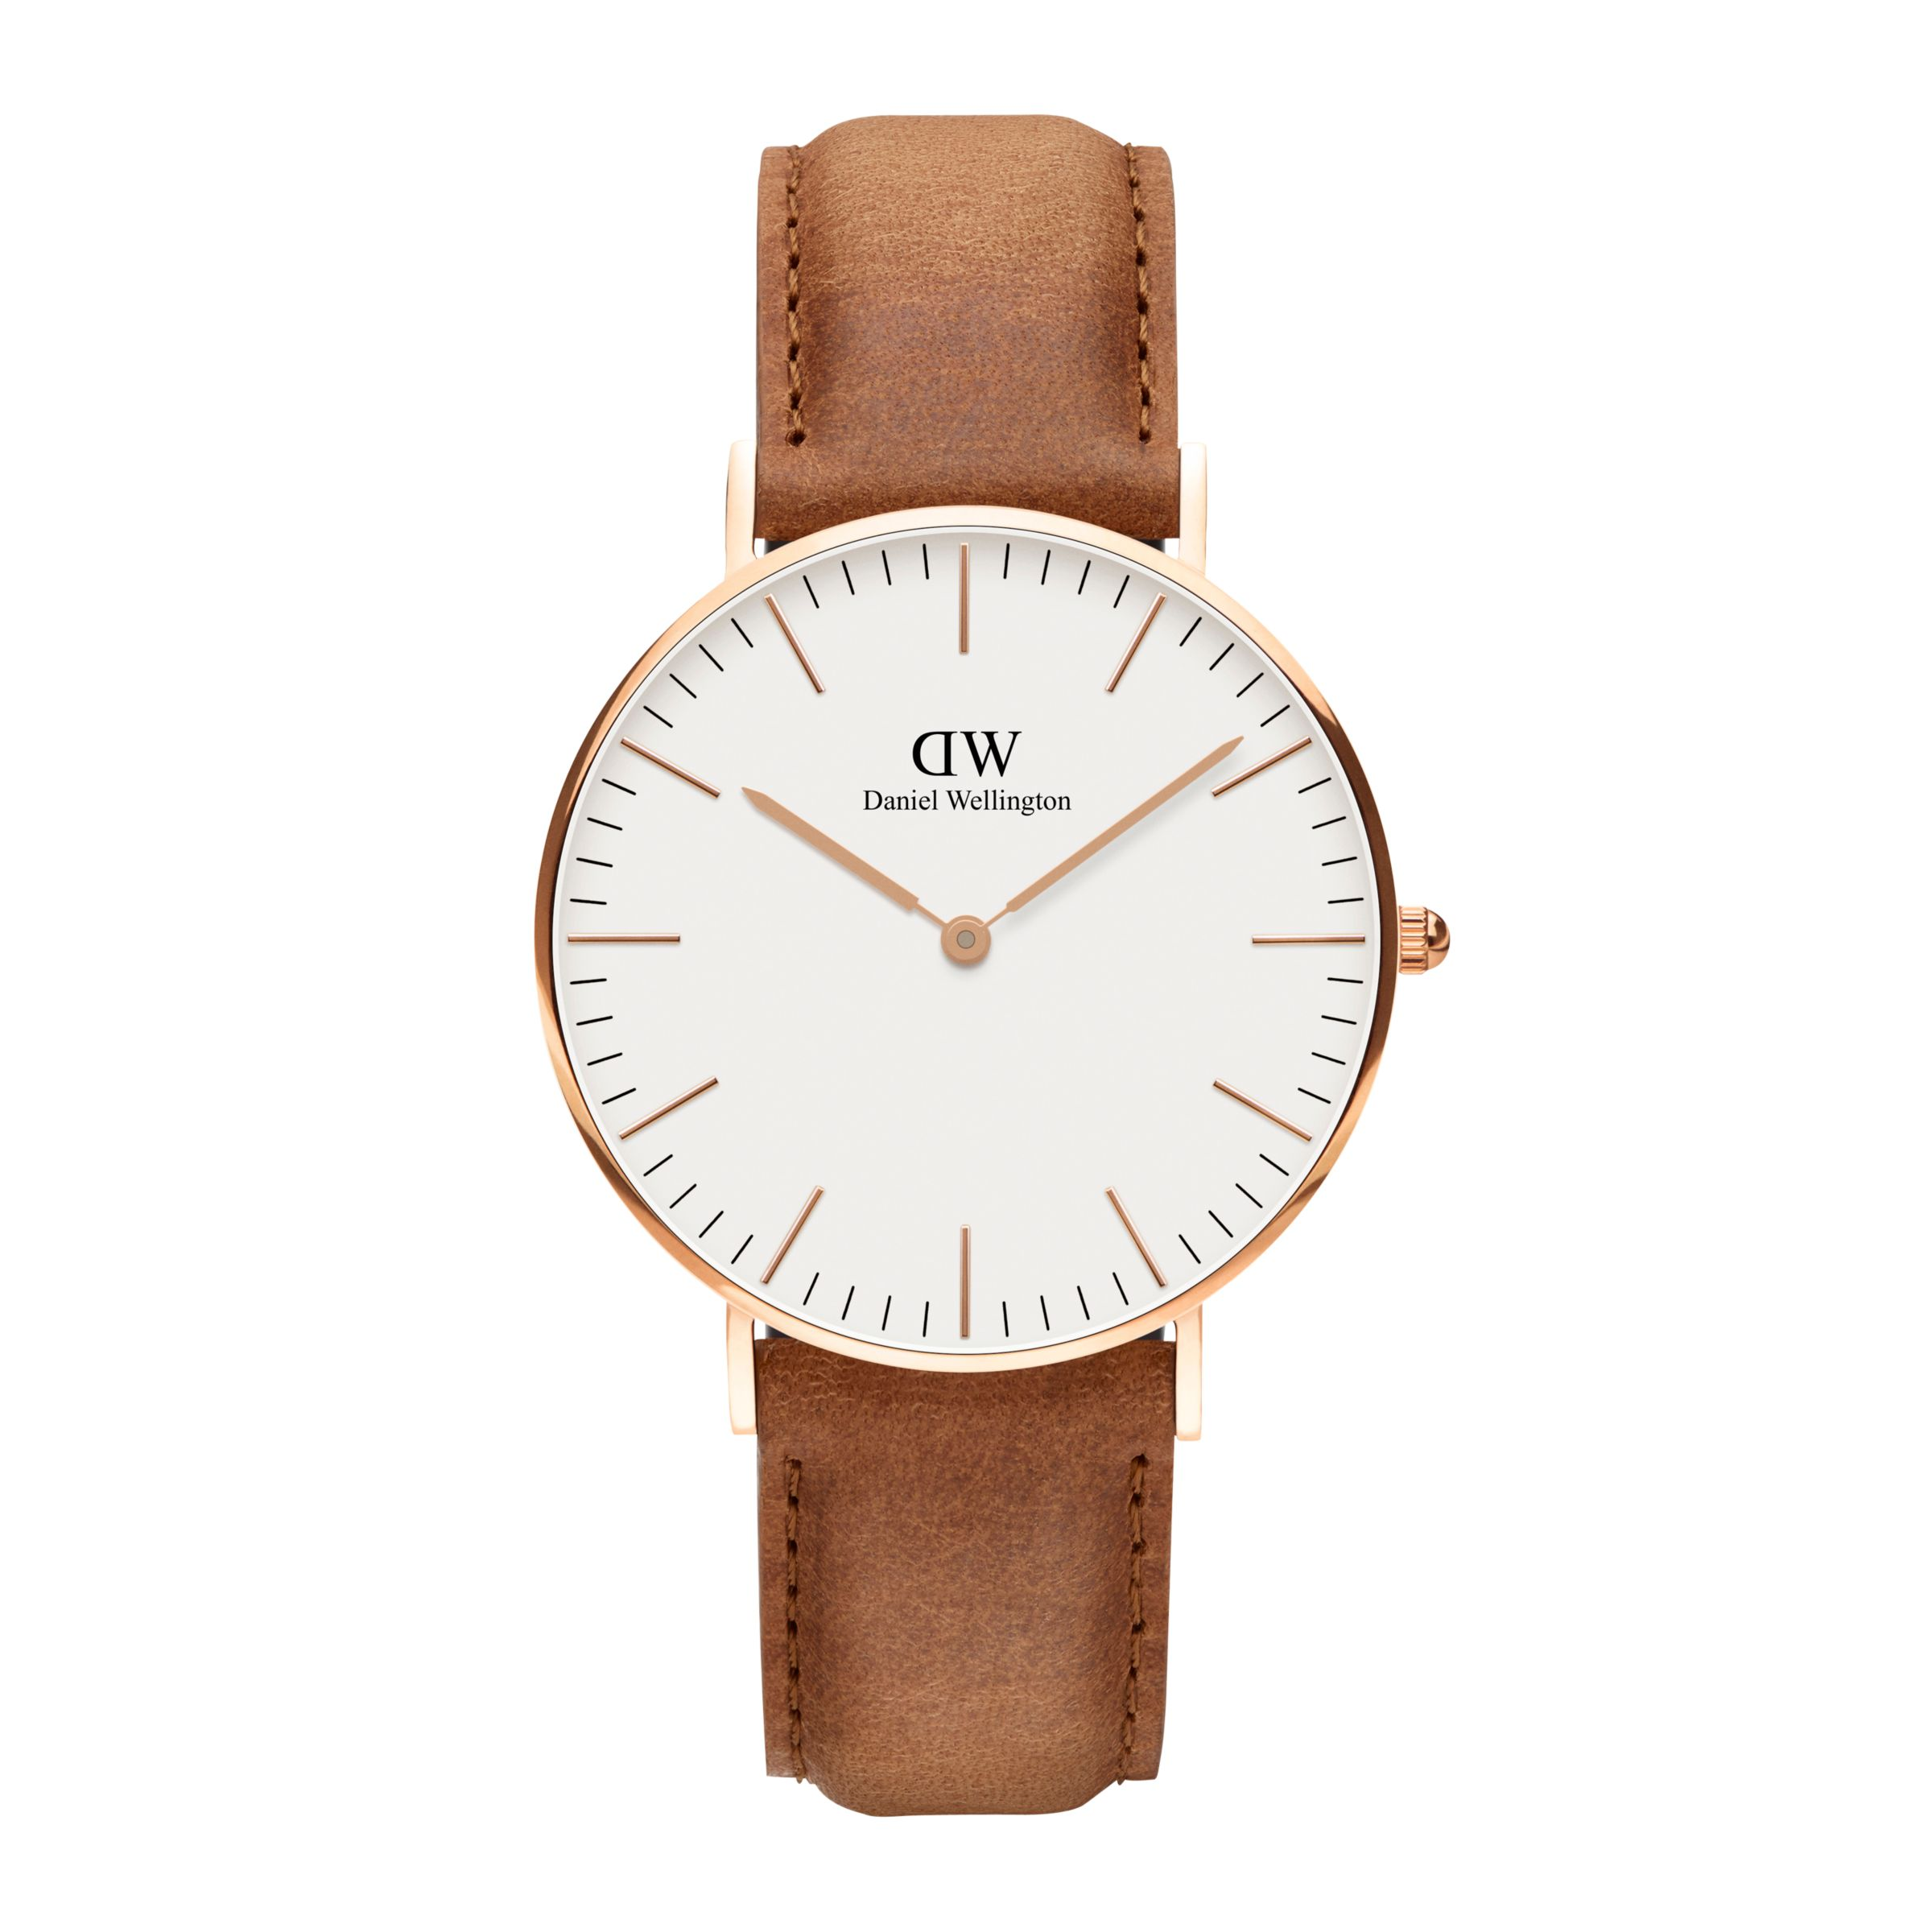 Daniel Wellington Daniel Wellington DW00100111 Women's 36mm Classic Durham Leather Strap Watch, Tan/White